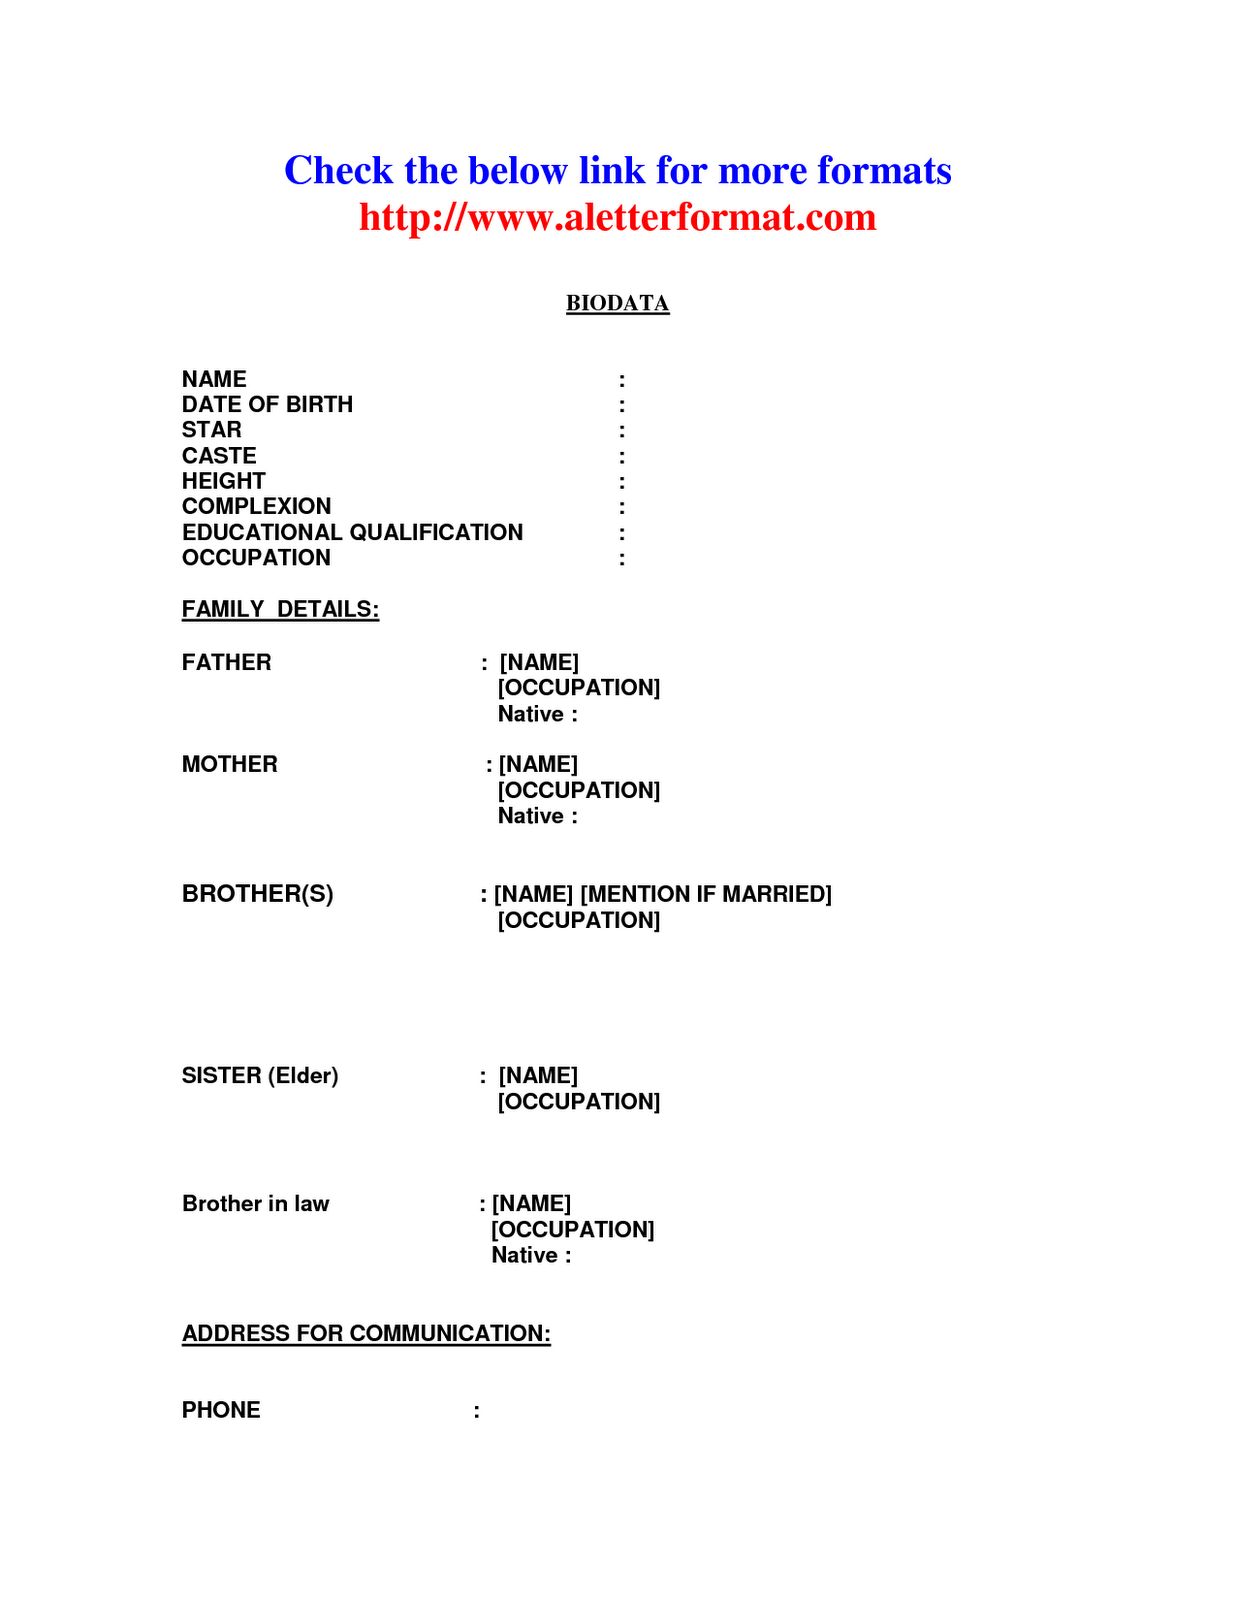 biodata format job cv example knowledge bio data format fybca